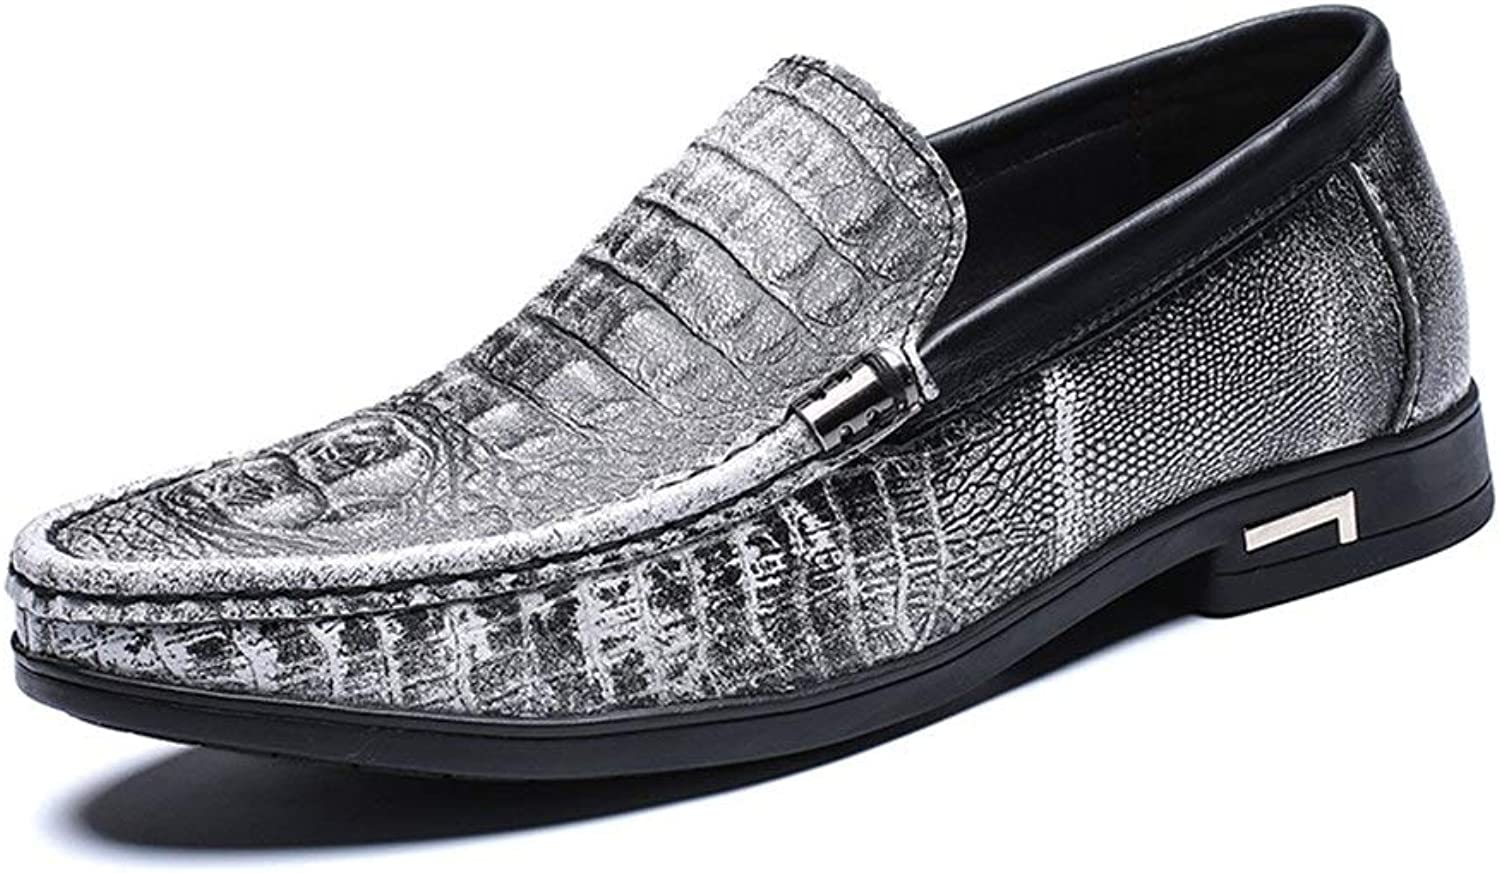 Easy Go Shopping Business shoes For Men Genuine Leather Comfortable Breathable Dress Casual Embossed Loafers Anti-slip Flat Slip-on Round Toe Cricket shoes (color   White, Size   6.5 UK)